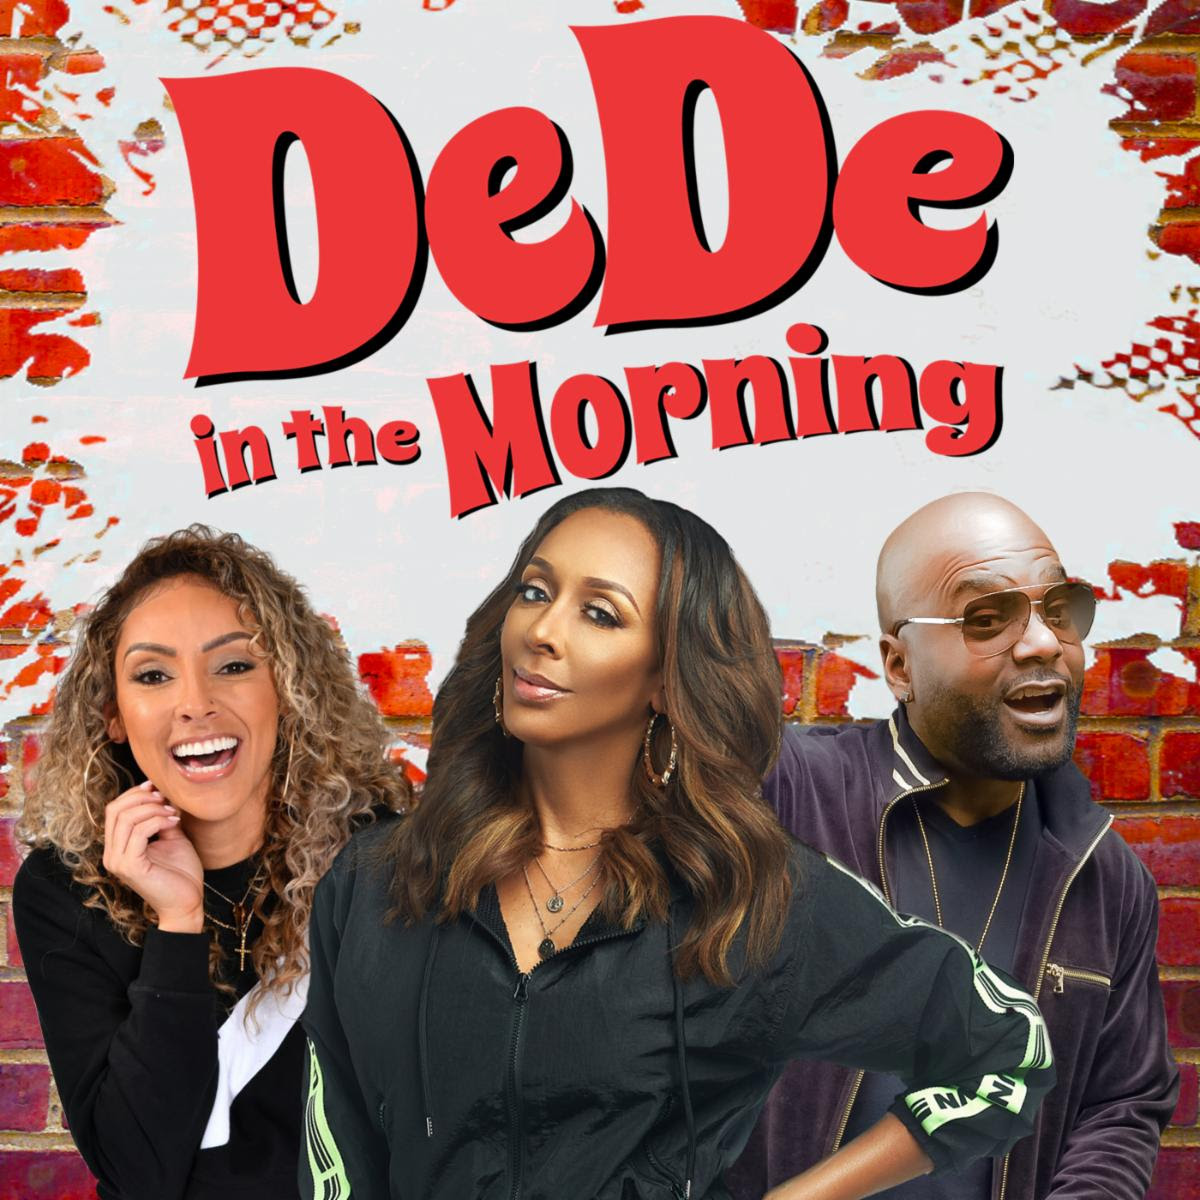 DeDe in the Morning!